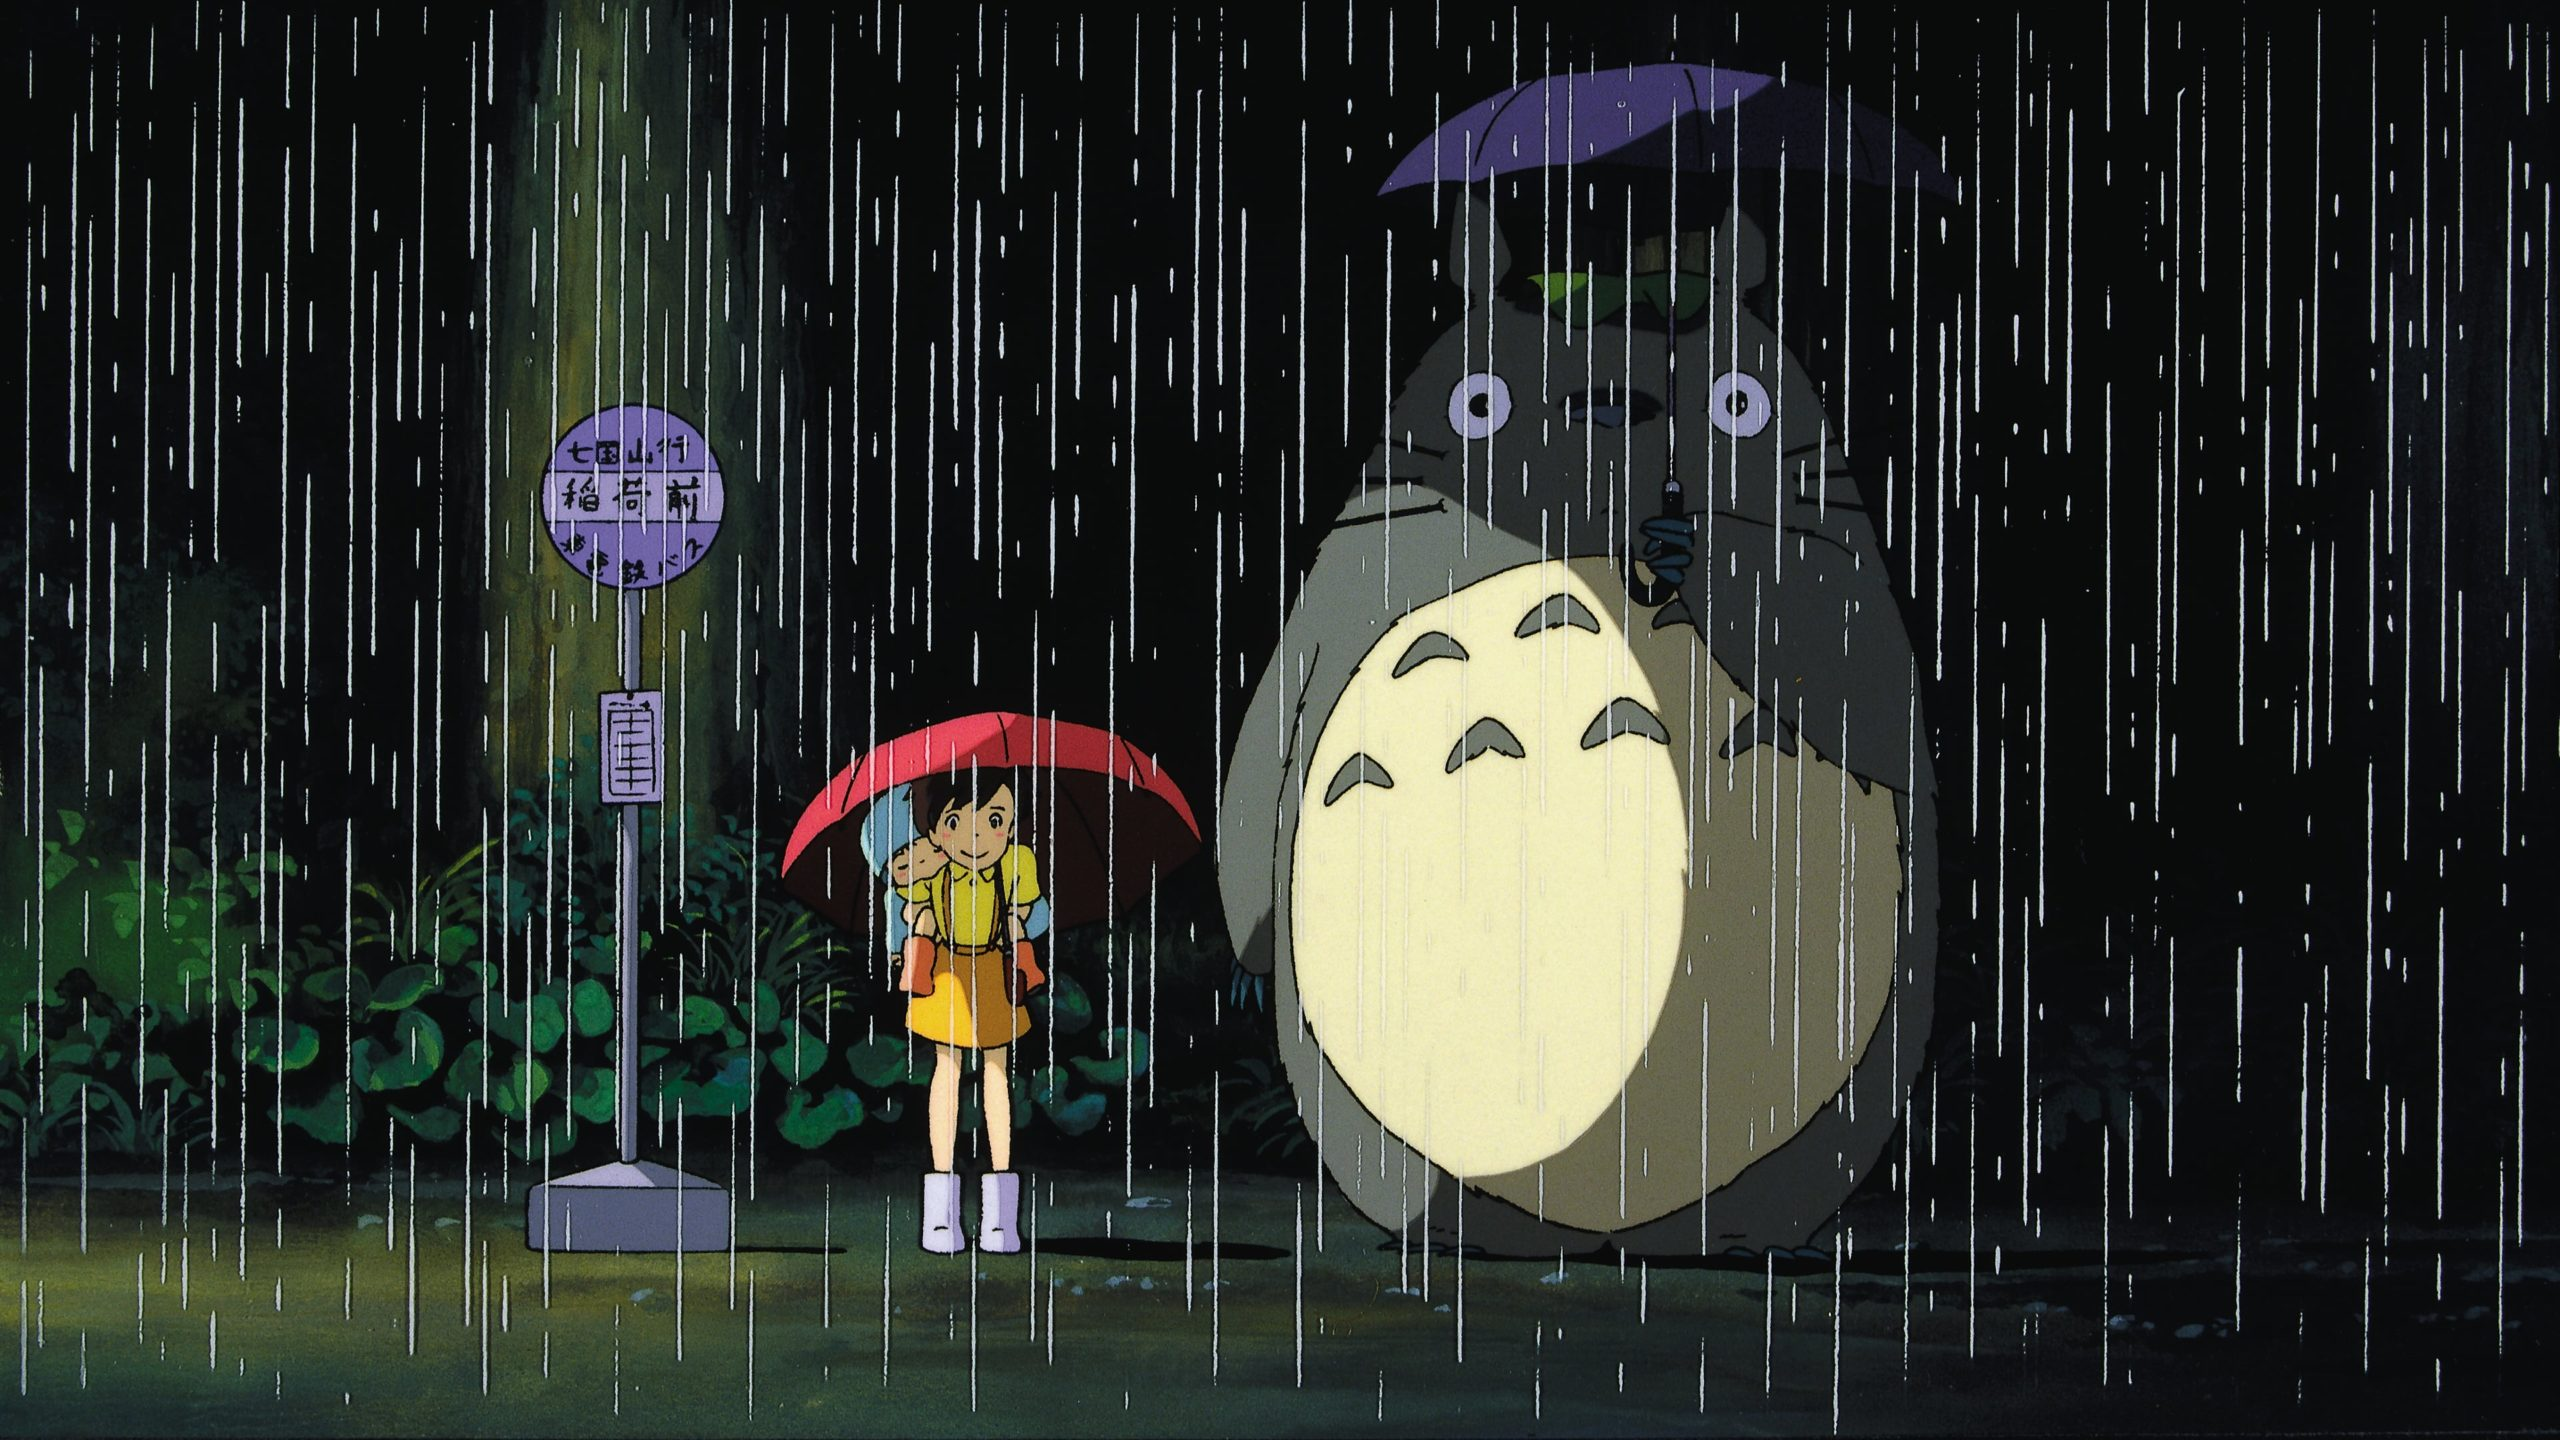 My Neighbor Totoro will be avilable to watch on Netflix - Credit: Studio Ghibli